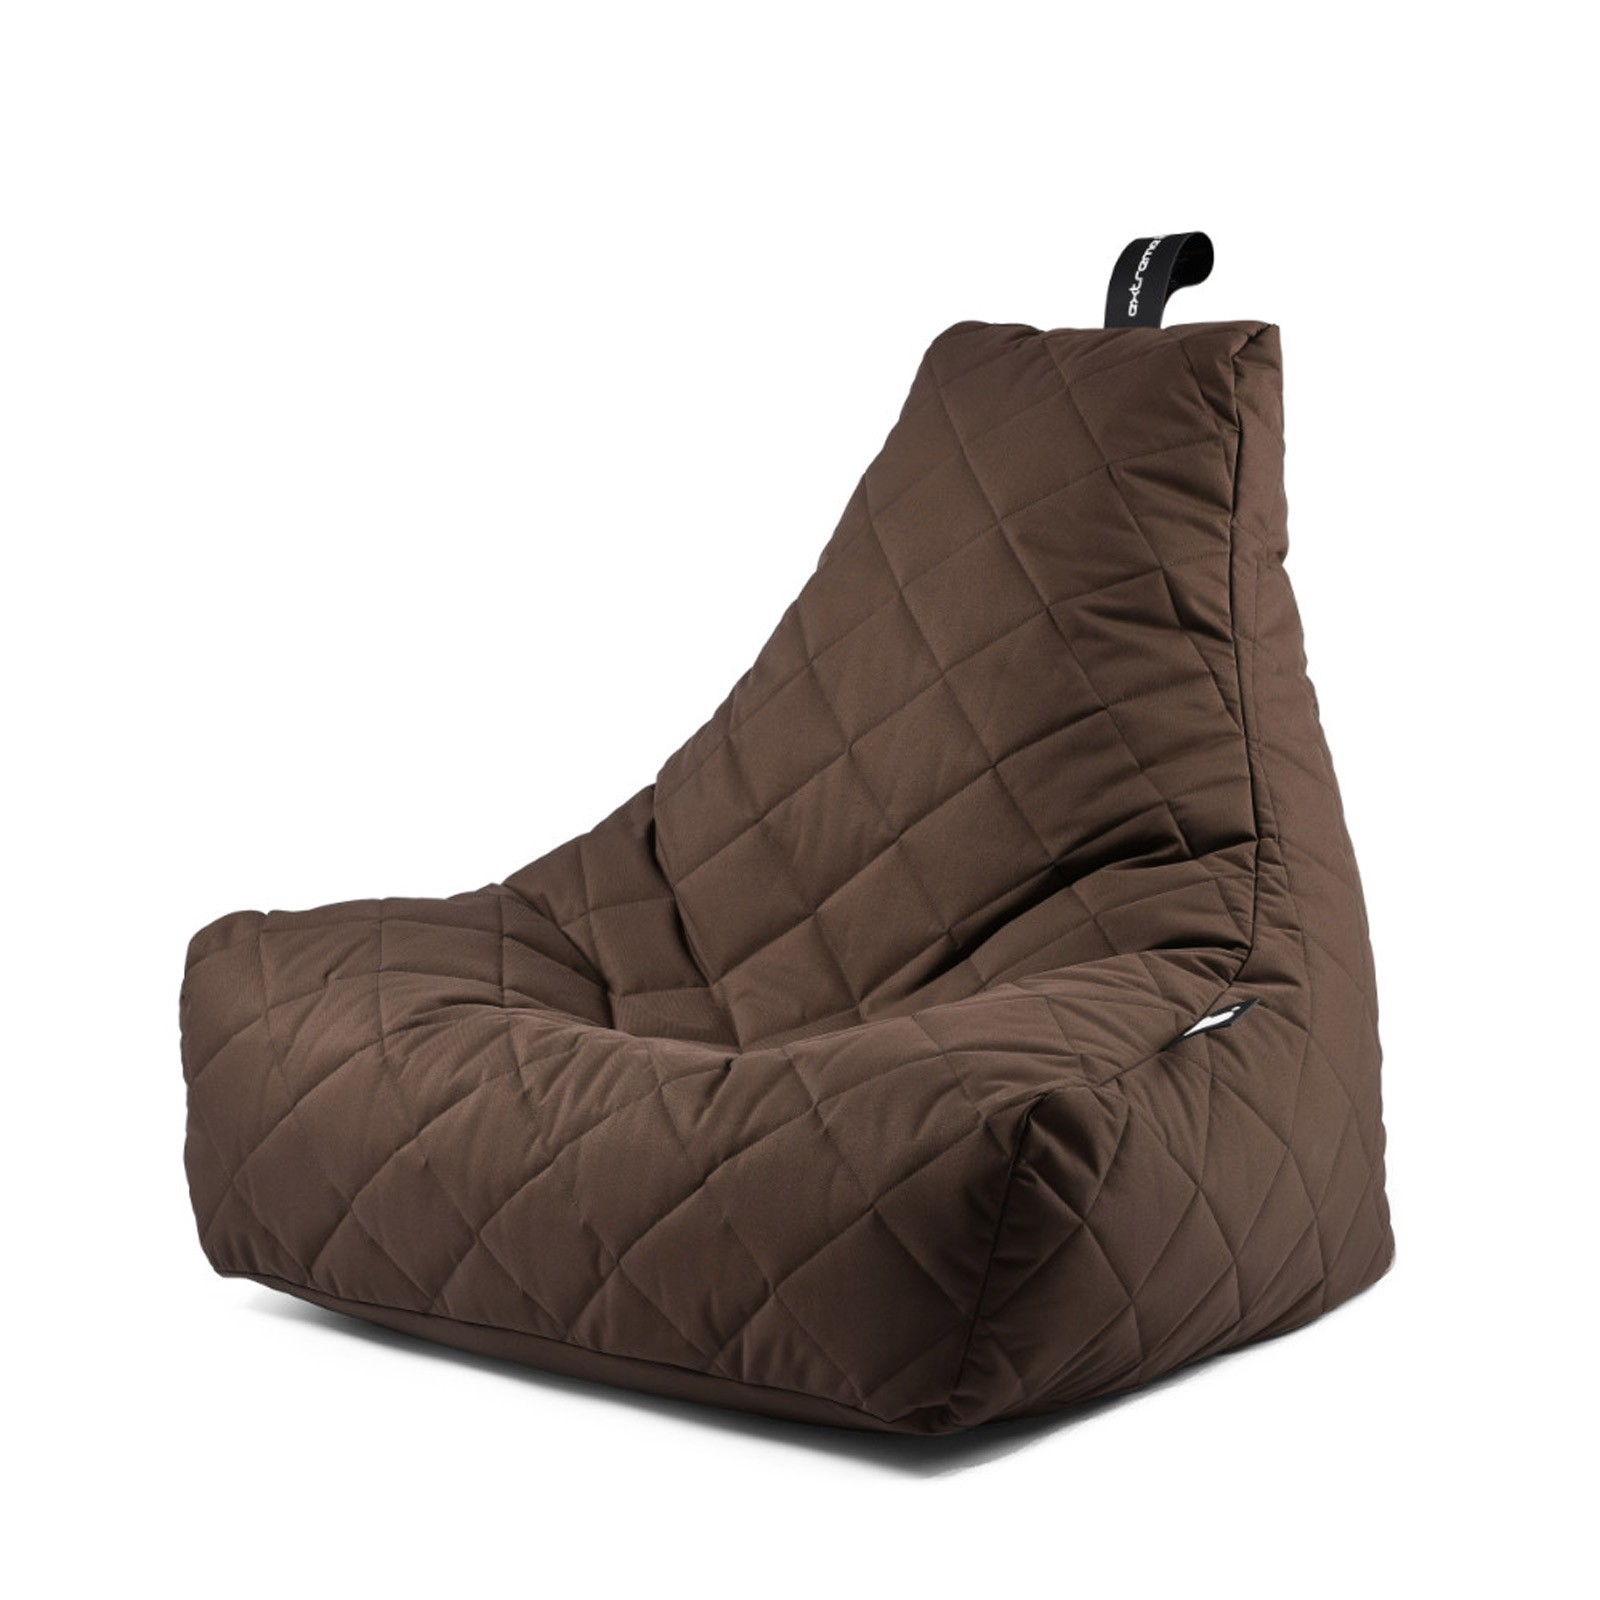 b-bag Extreme Lounging gesteppter Sitzsack Indoor + Outdoor mighty-b Quilted Farbe Brown